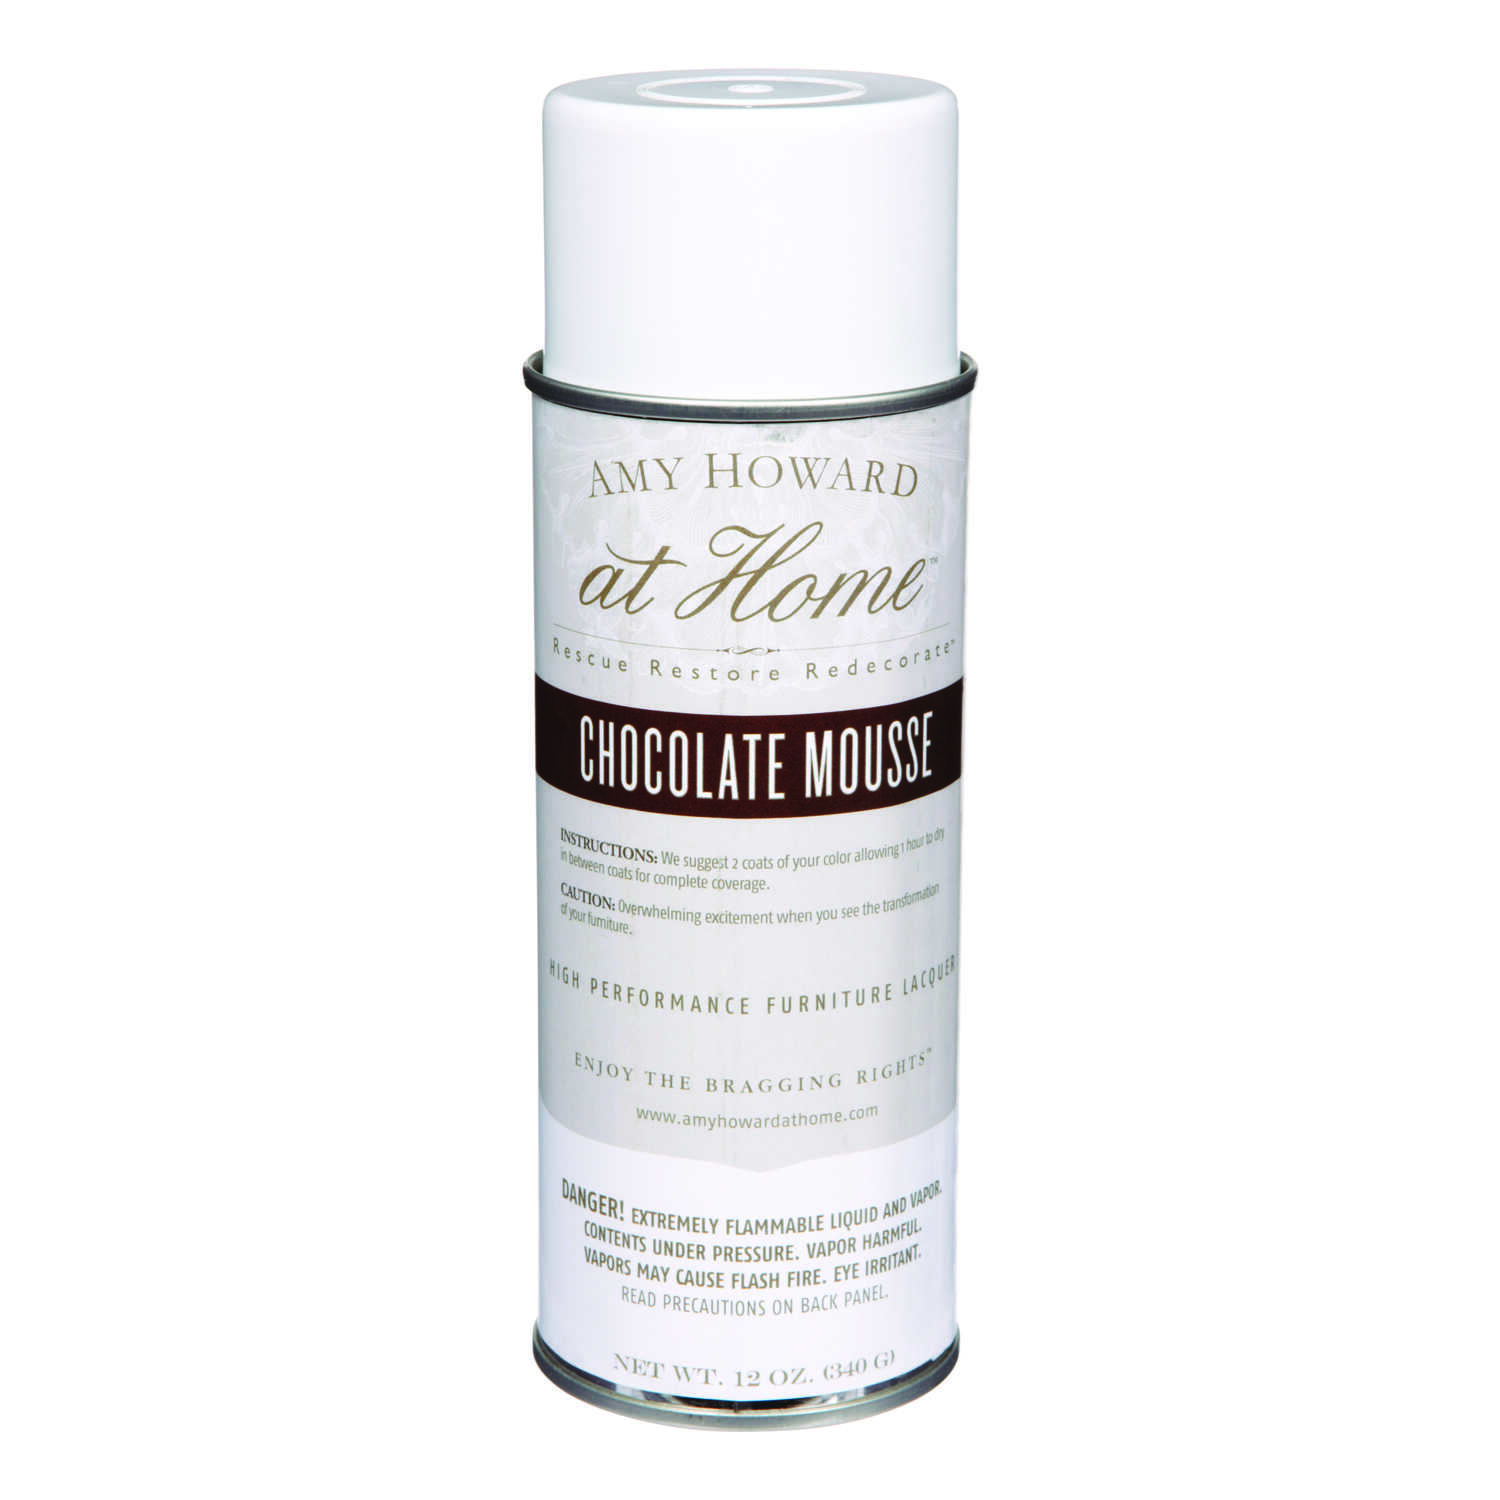 Amy Howard at Home  Gloss  Chocolate Mousse  High Performance Furniture Lacquer Spray  12 oz.